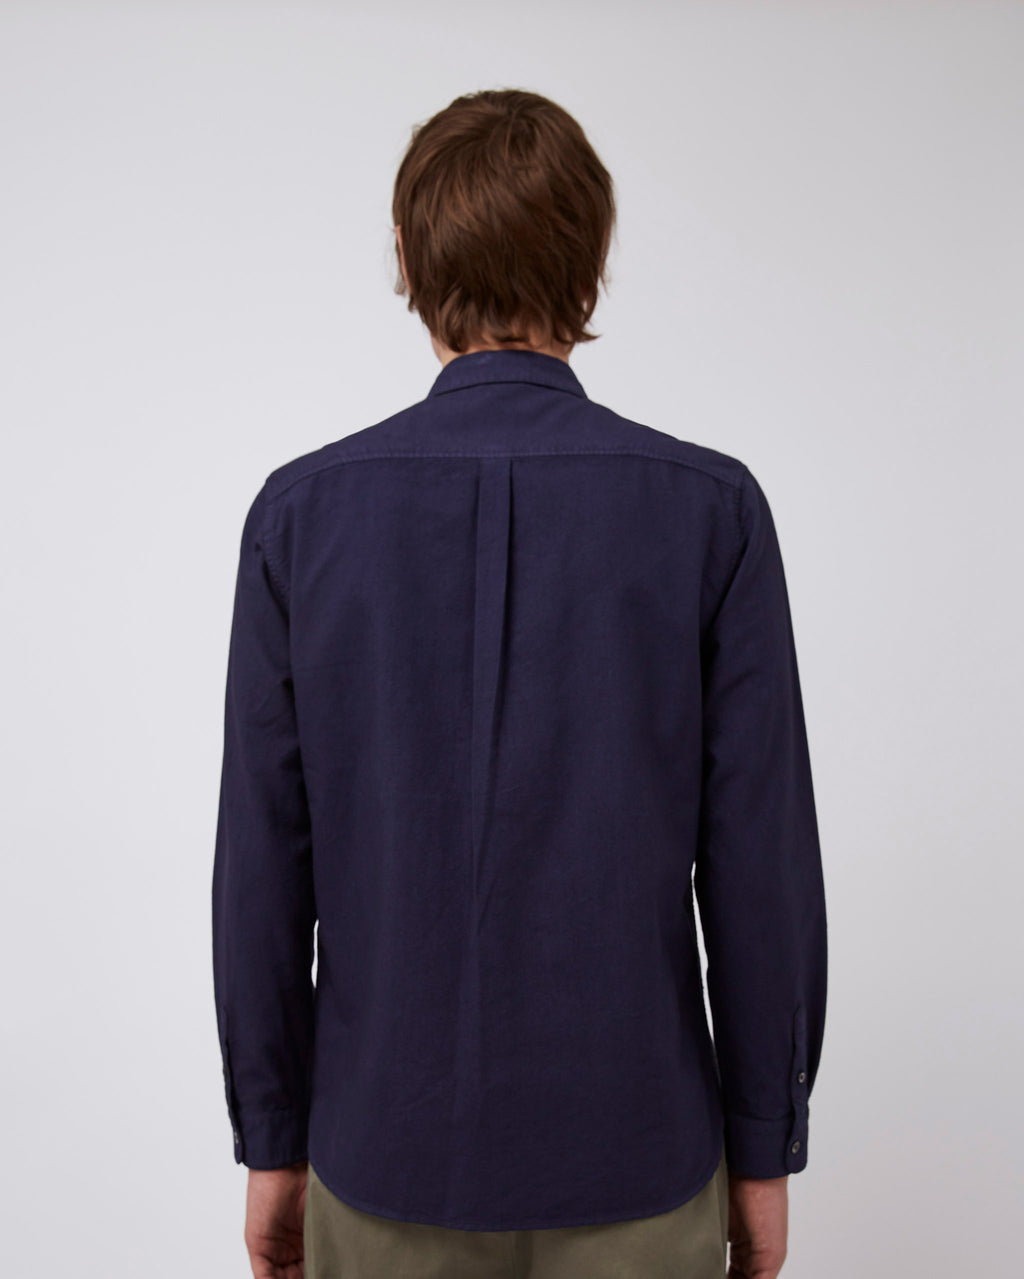 The William Oxford in Navy